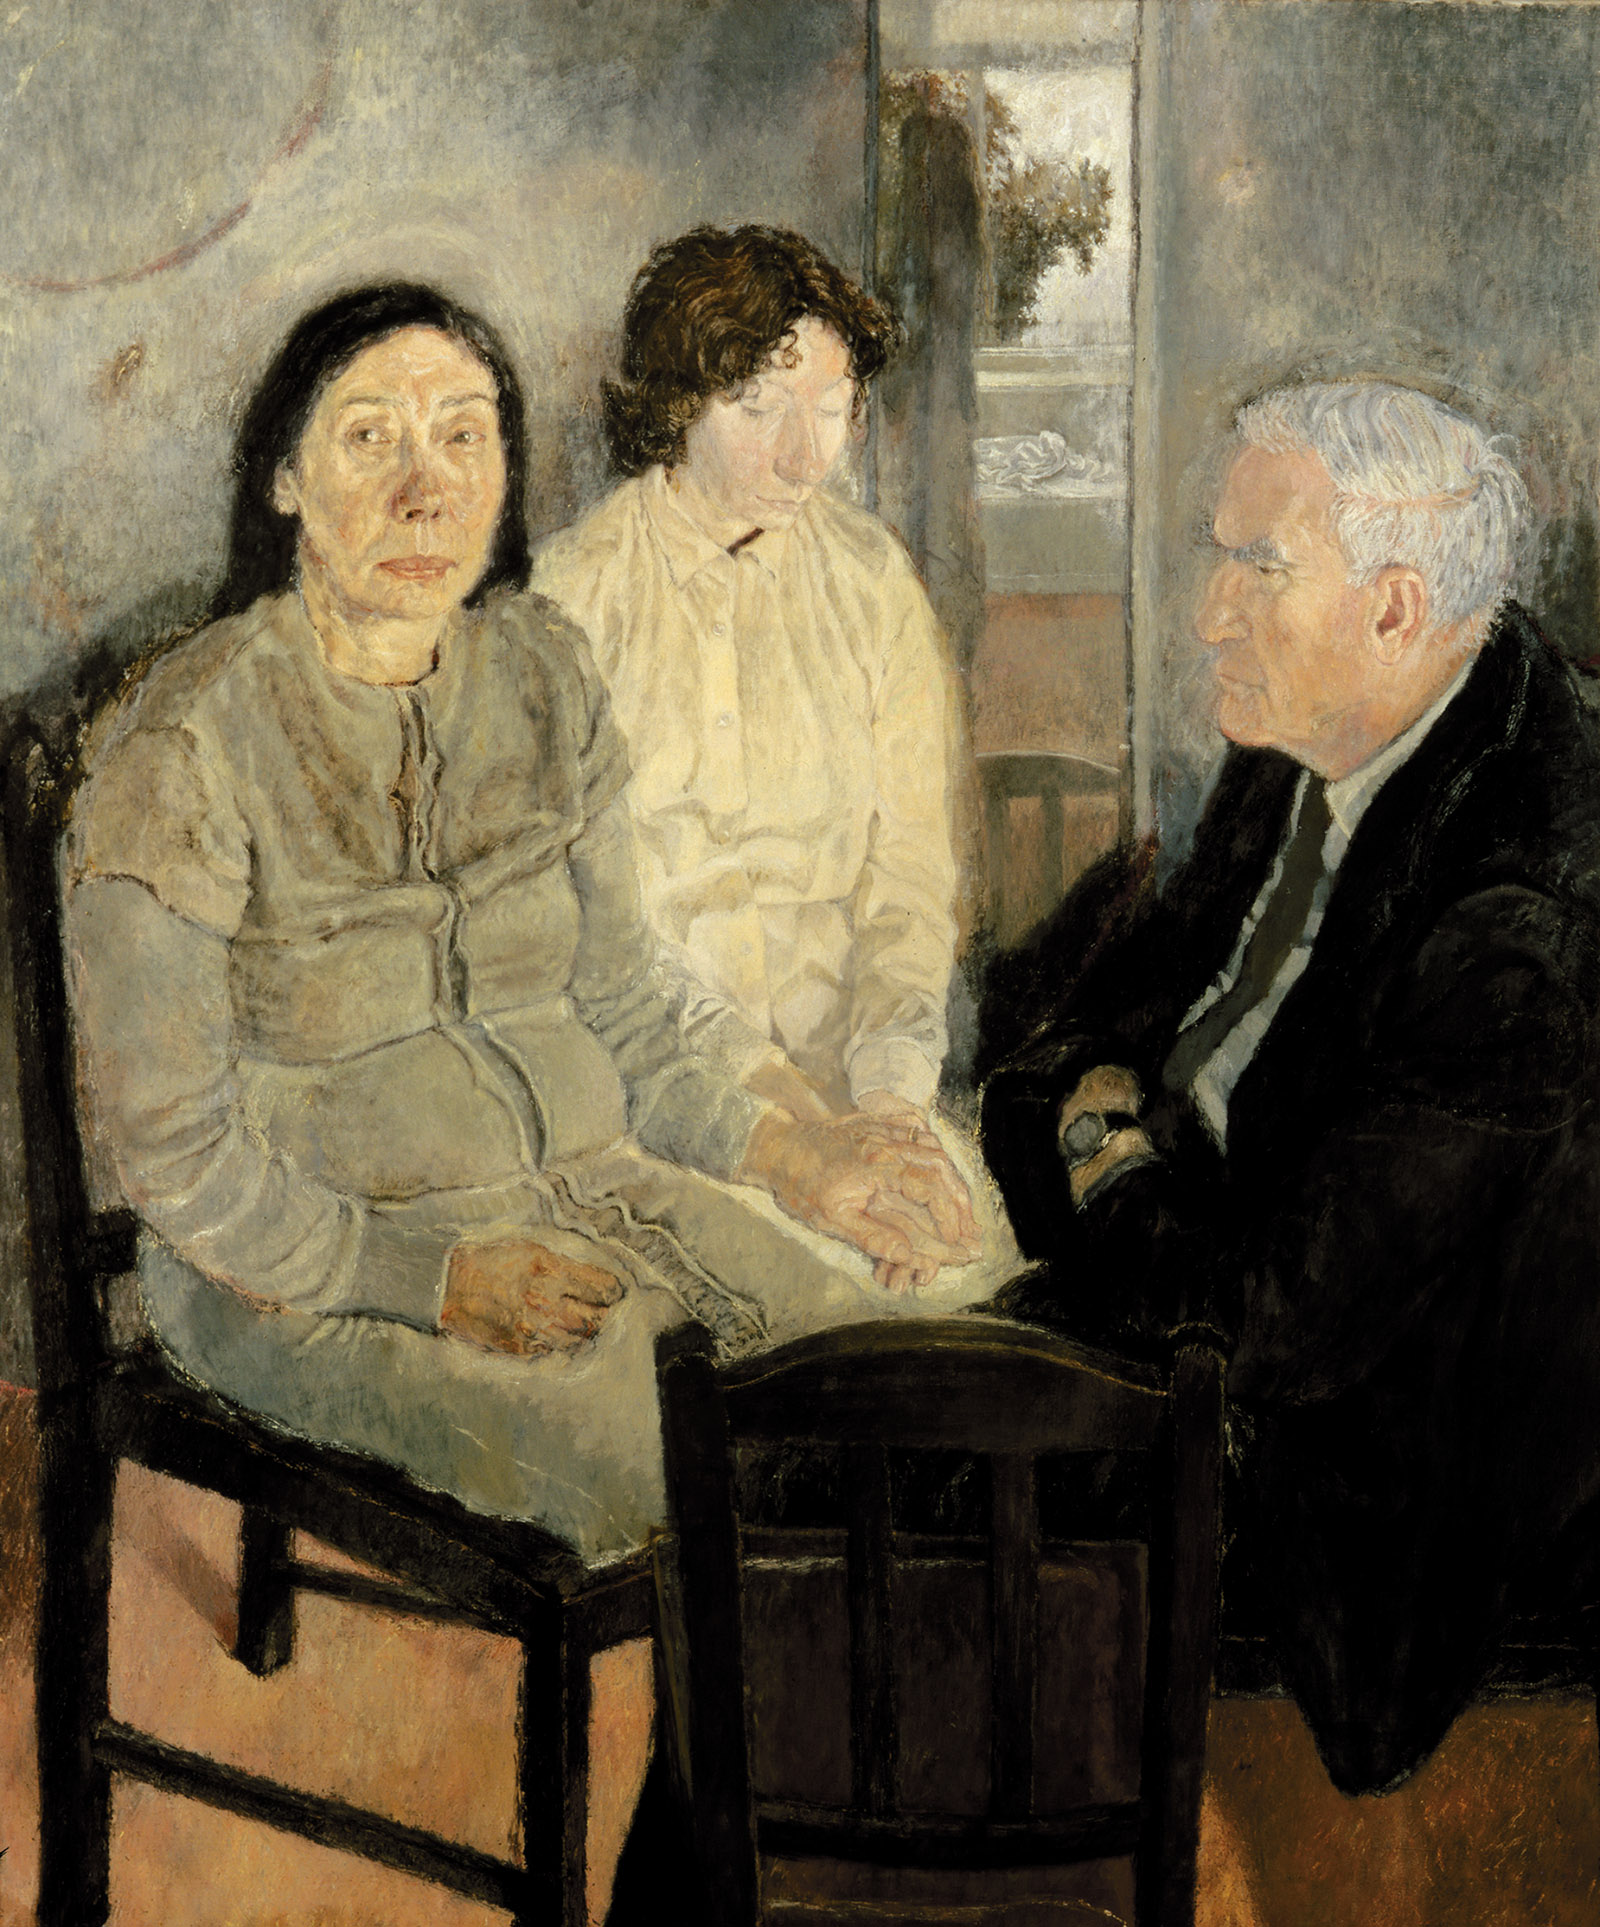 Family Group, 1980; painting by Celia Paul